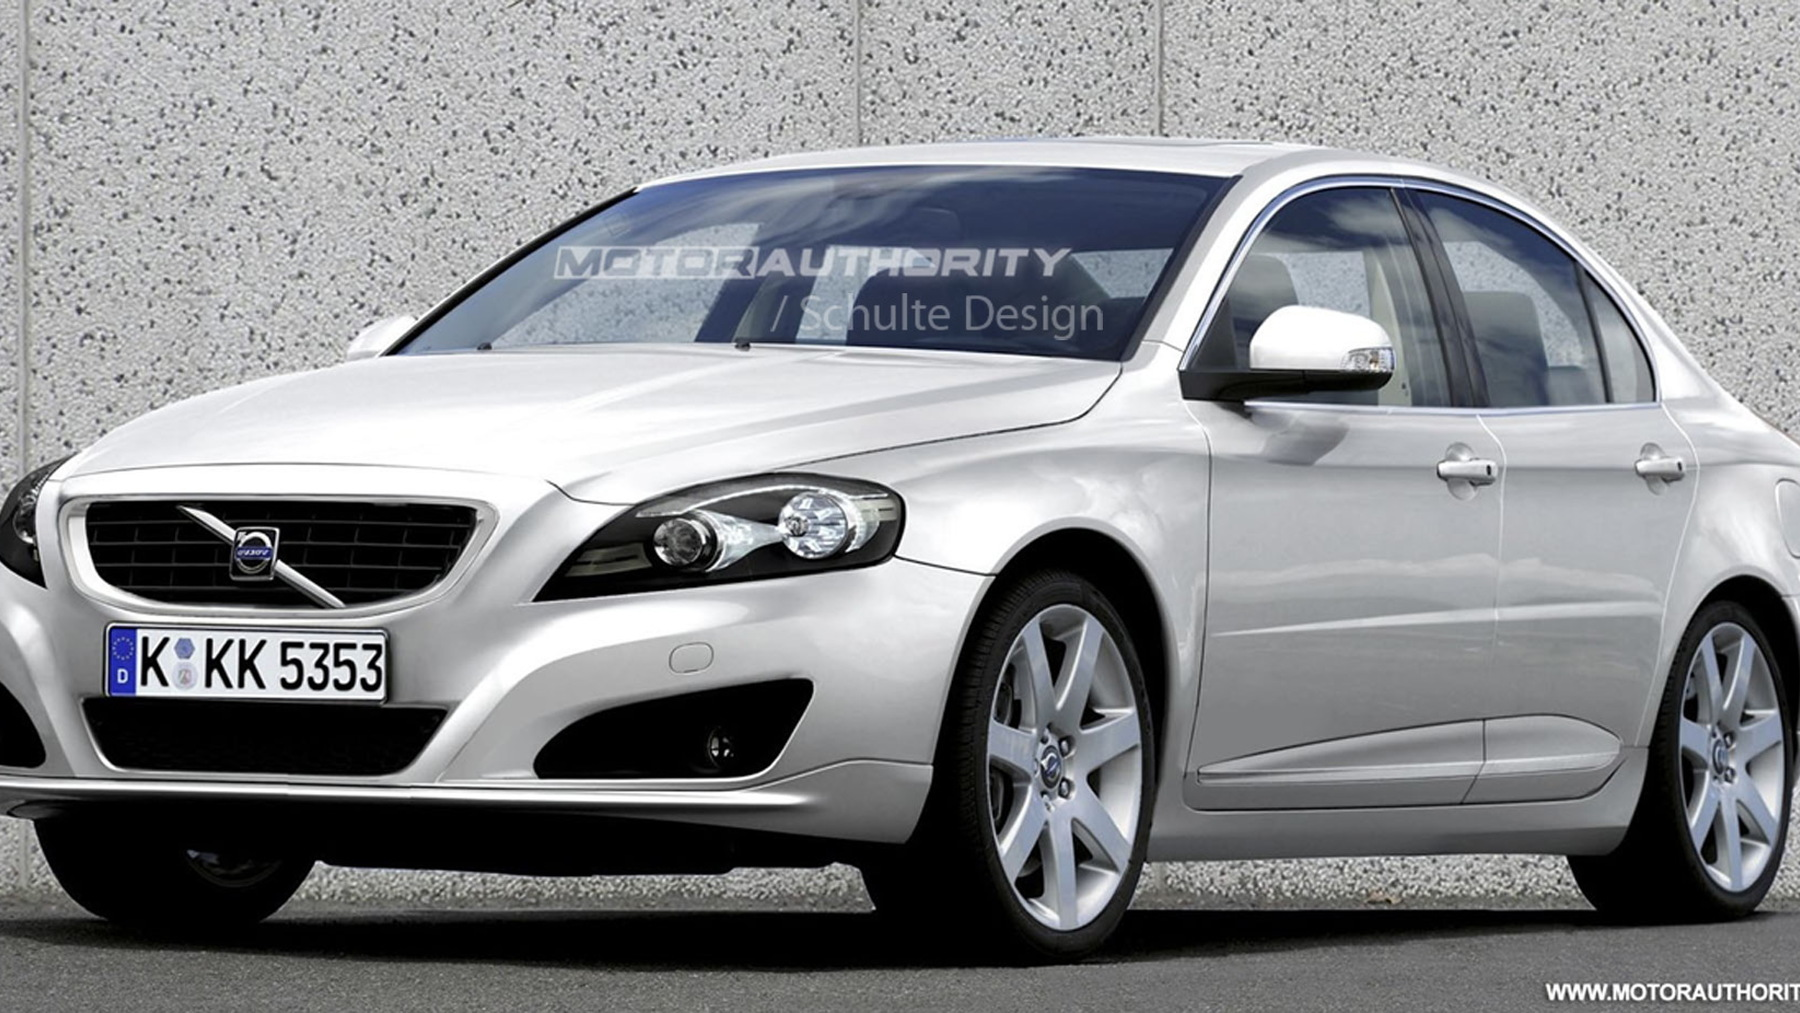 2010 volvo s60 preview rendering 001